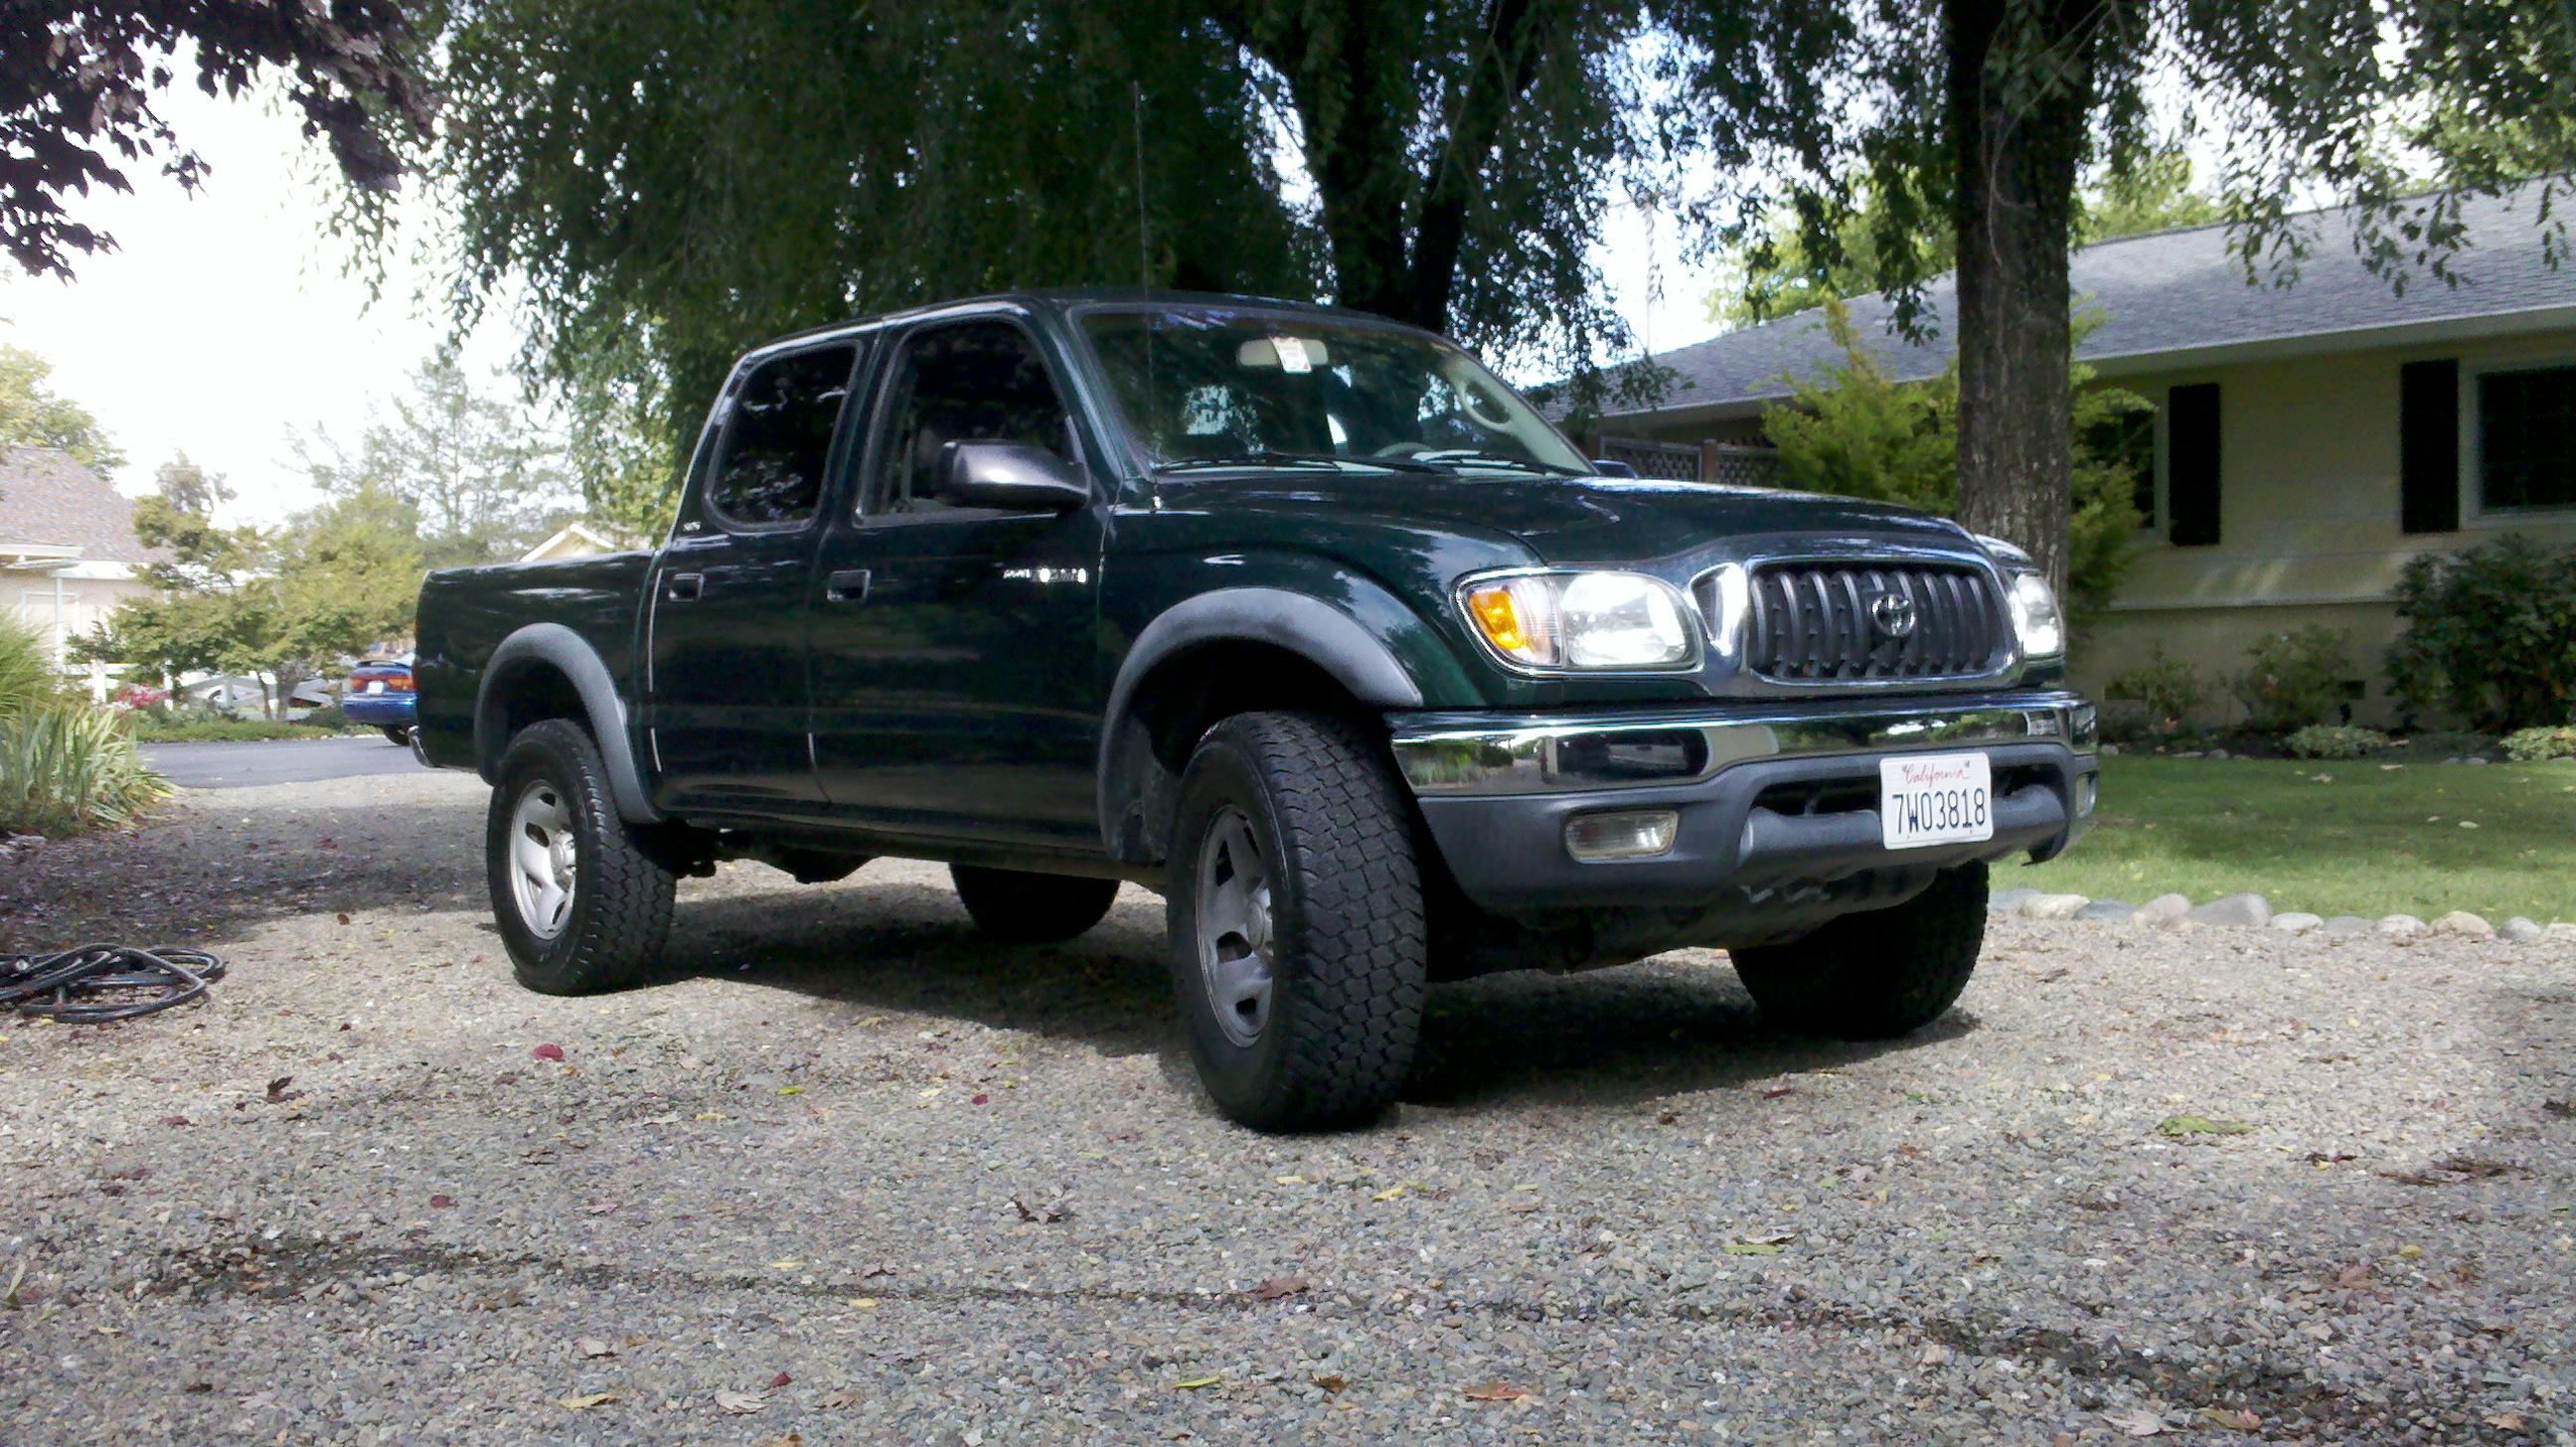 zschreeder 2002 toyota tacoma double cabprerunner 4d specs photos modification info at cardomain. Black Bedroom Furniture Sets. Home Design Ideas